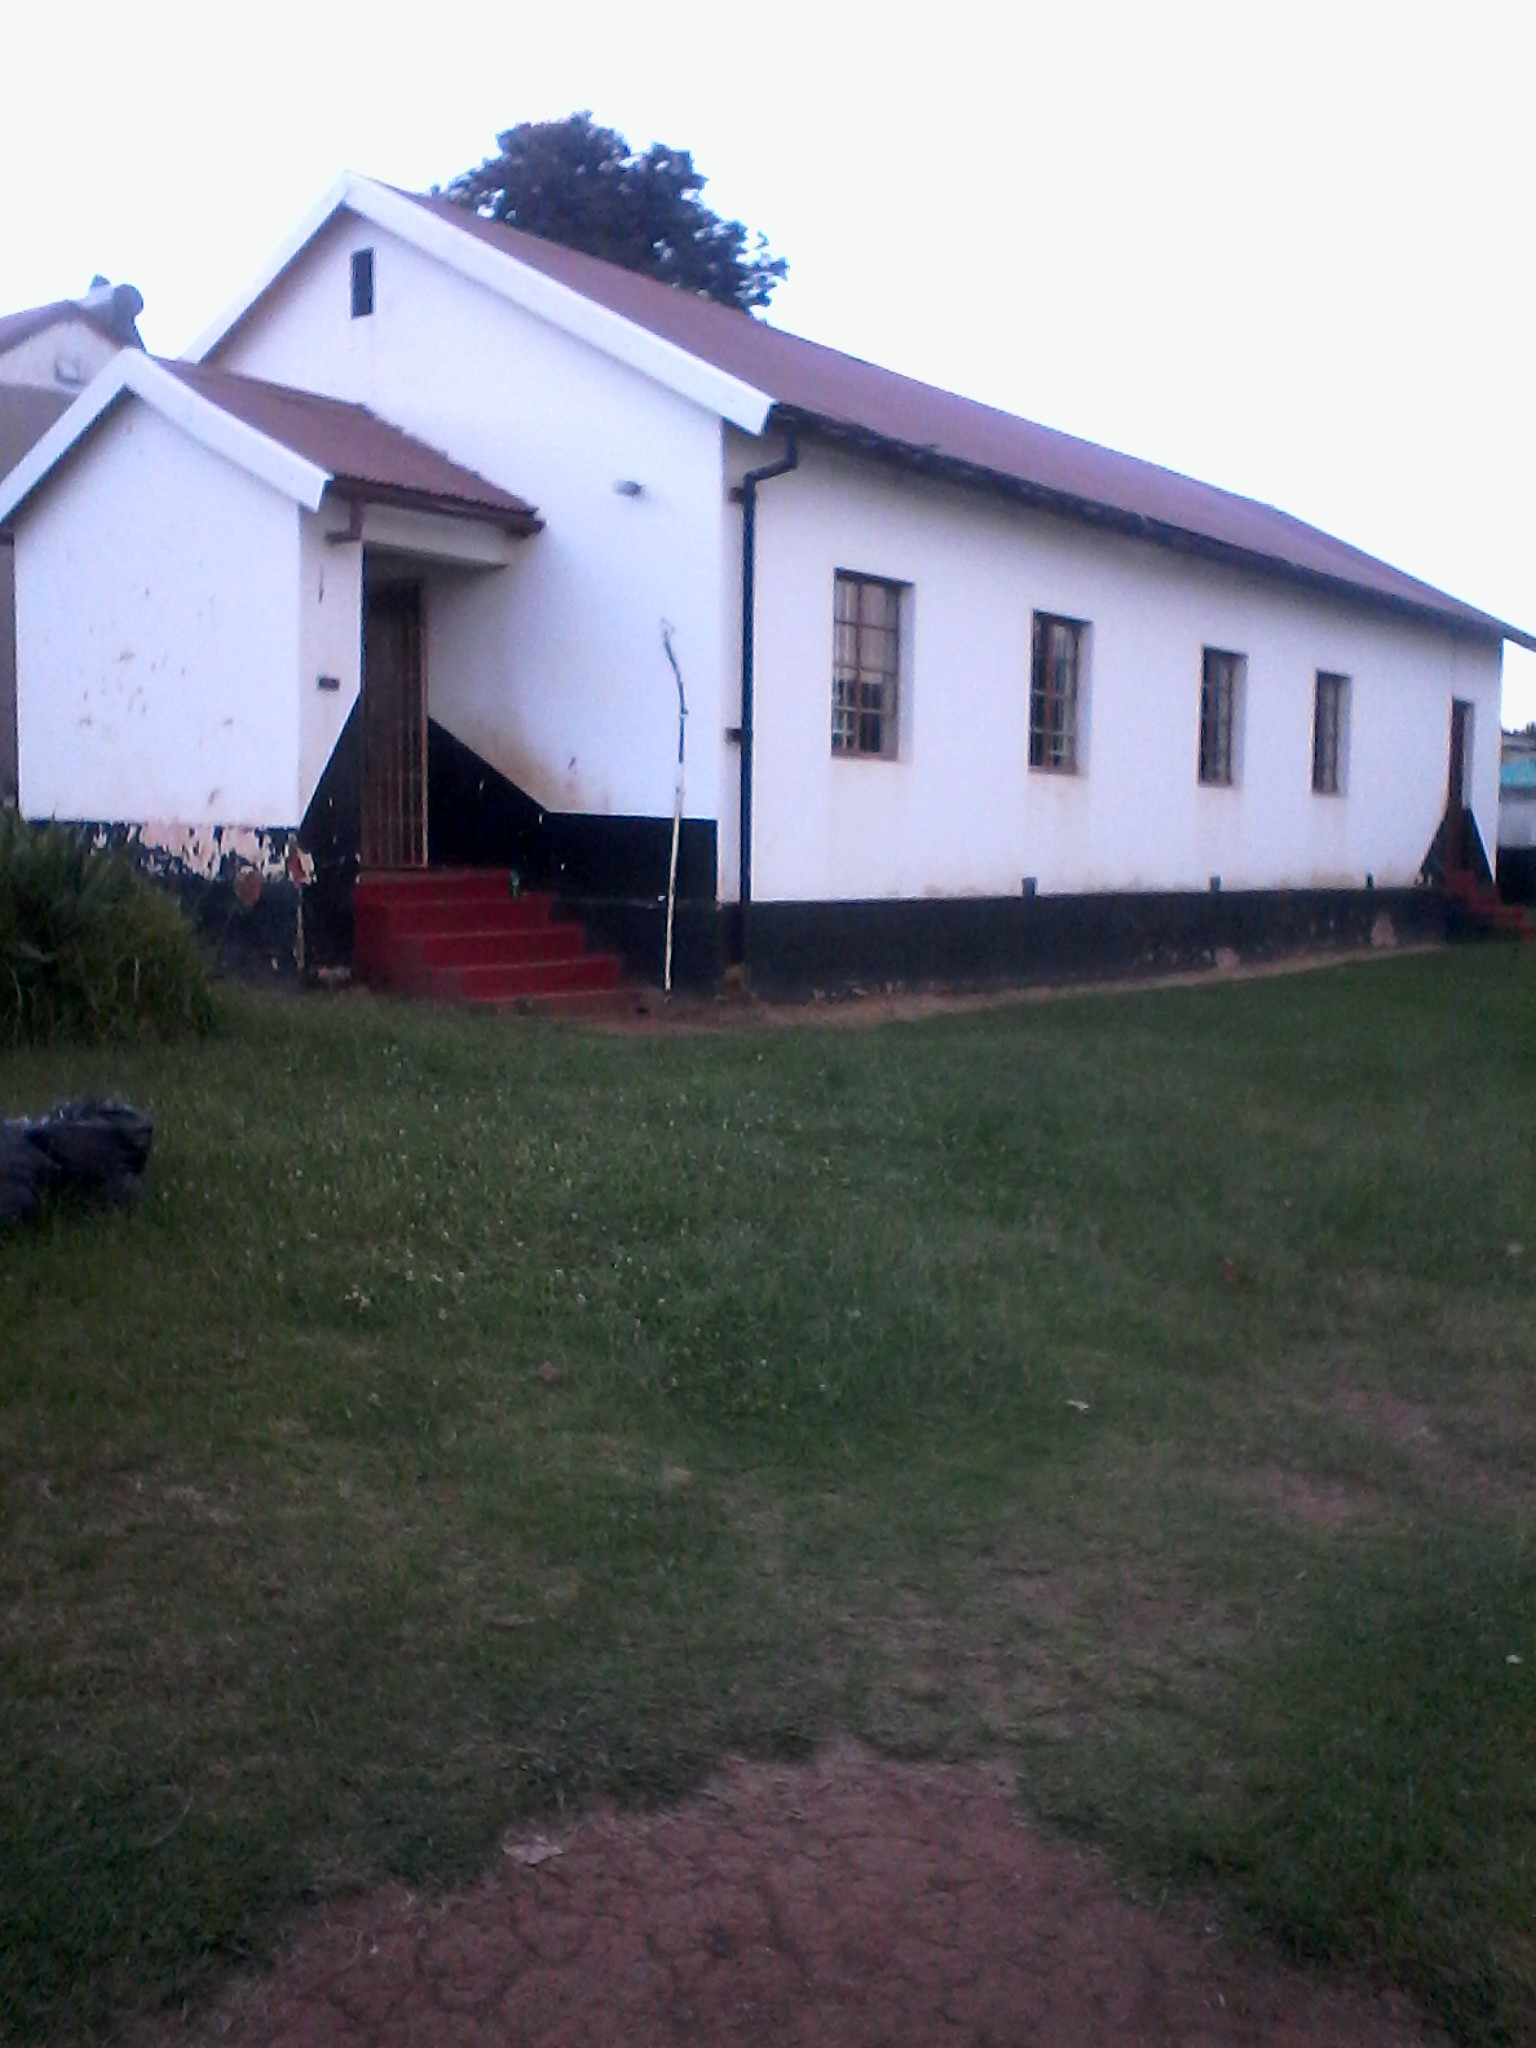 Church and land for sale, Kokstad